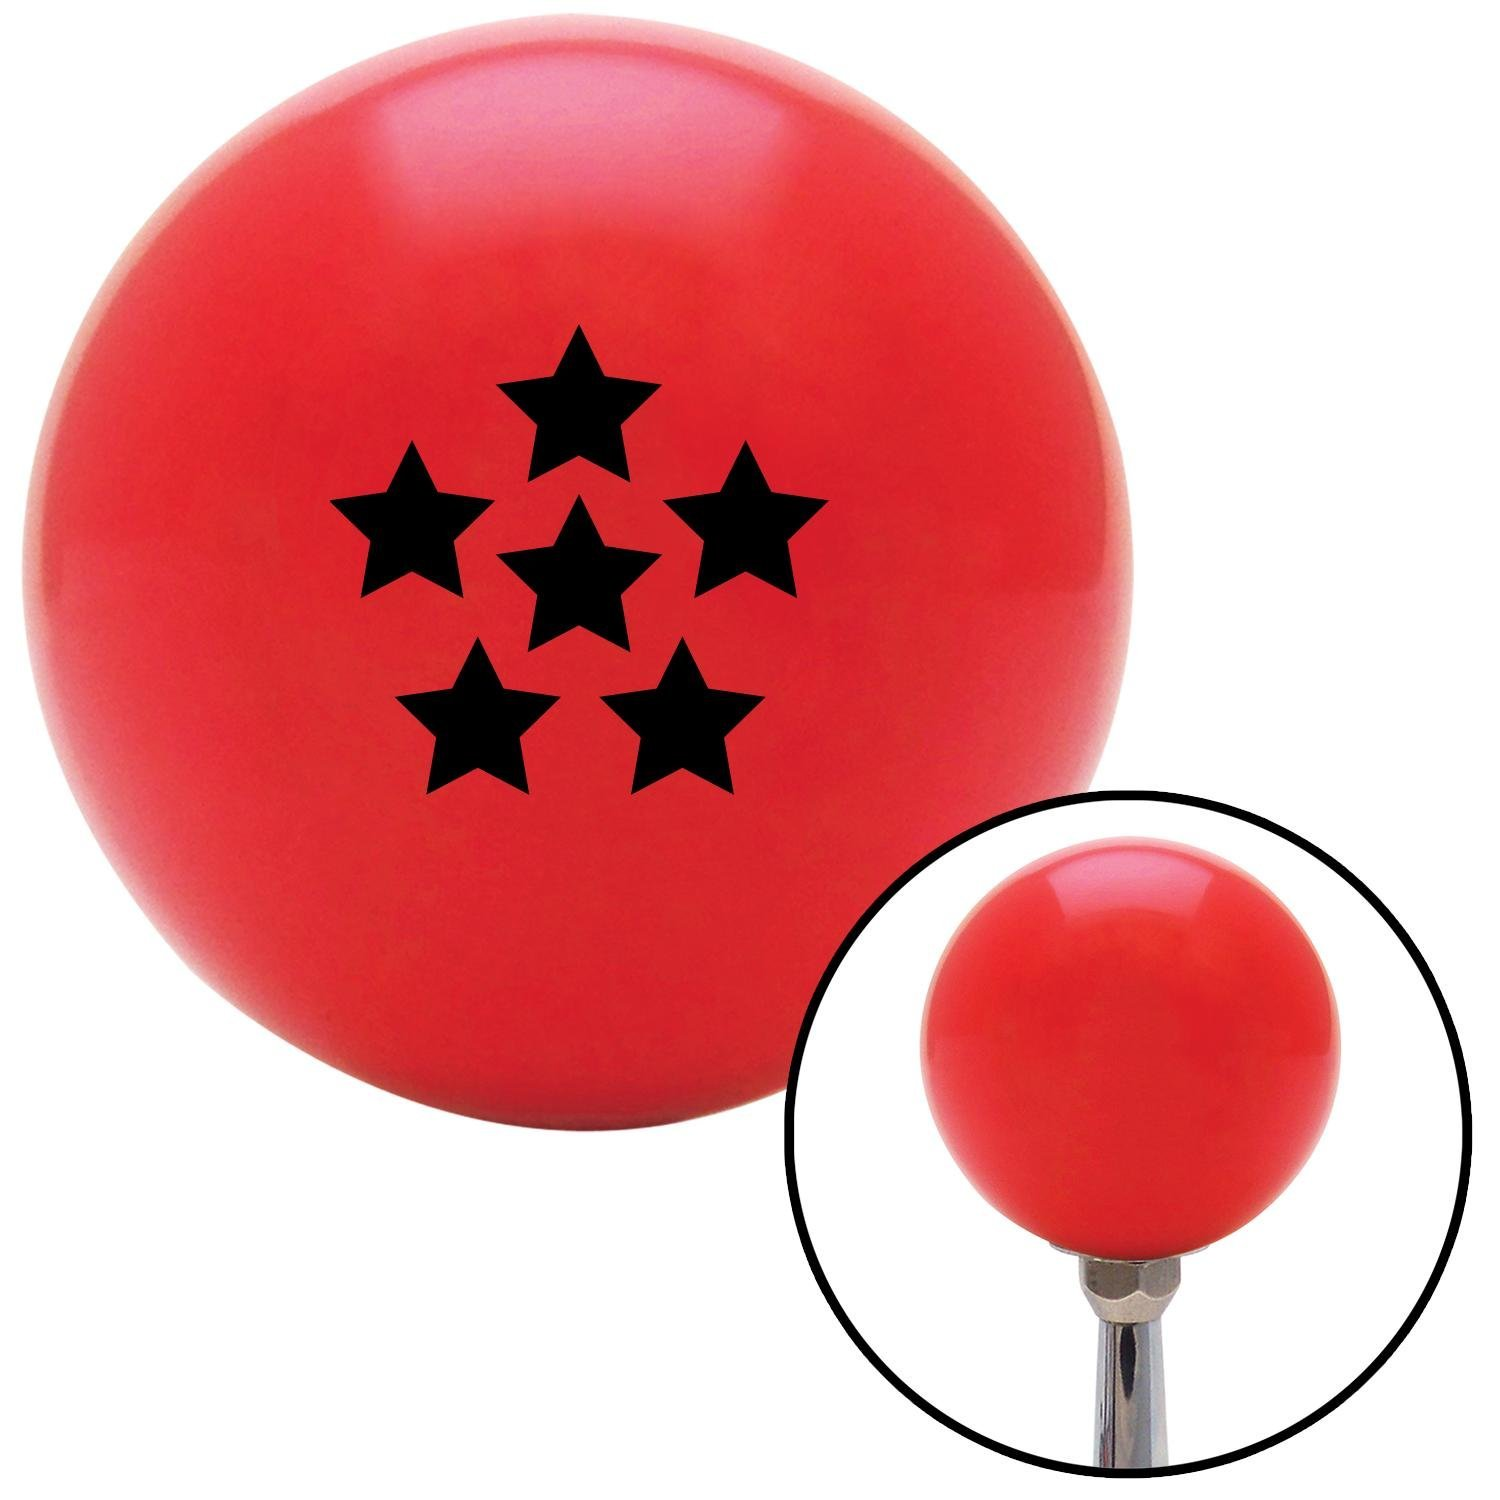 American Shifter 311460 Shift Knob Black Dragon Ball Z - 6 Star Red with M16 x 1.5 Insert